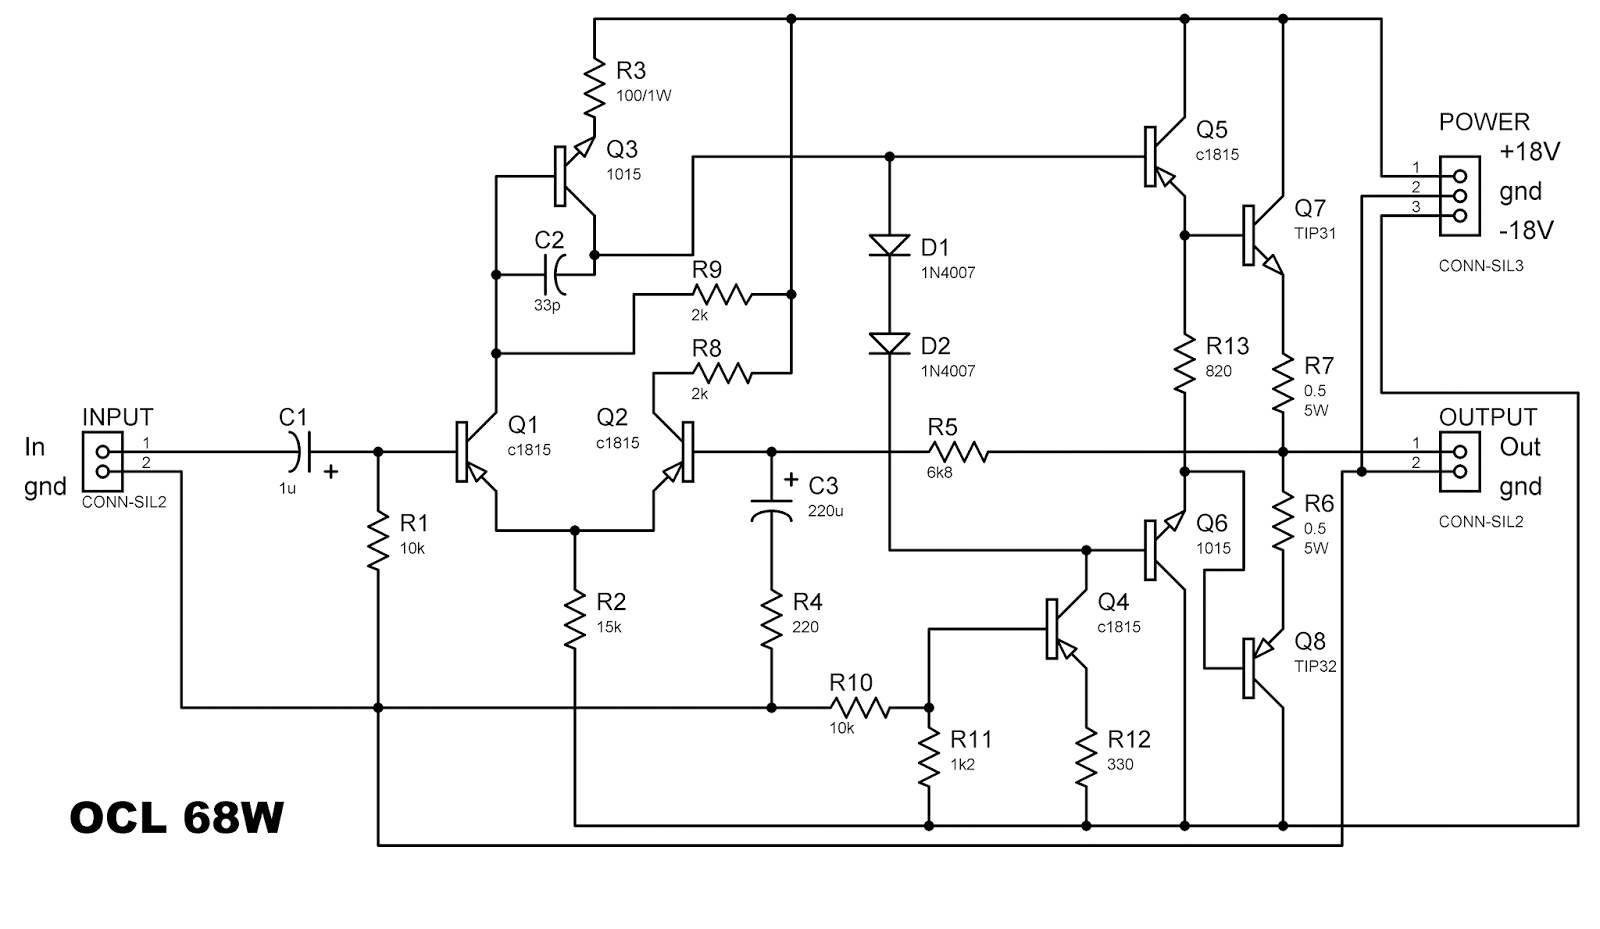 Ocl 68 Watt Power Amplifier Electronic Circuit 32 Diagram